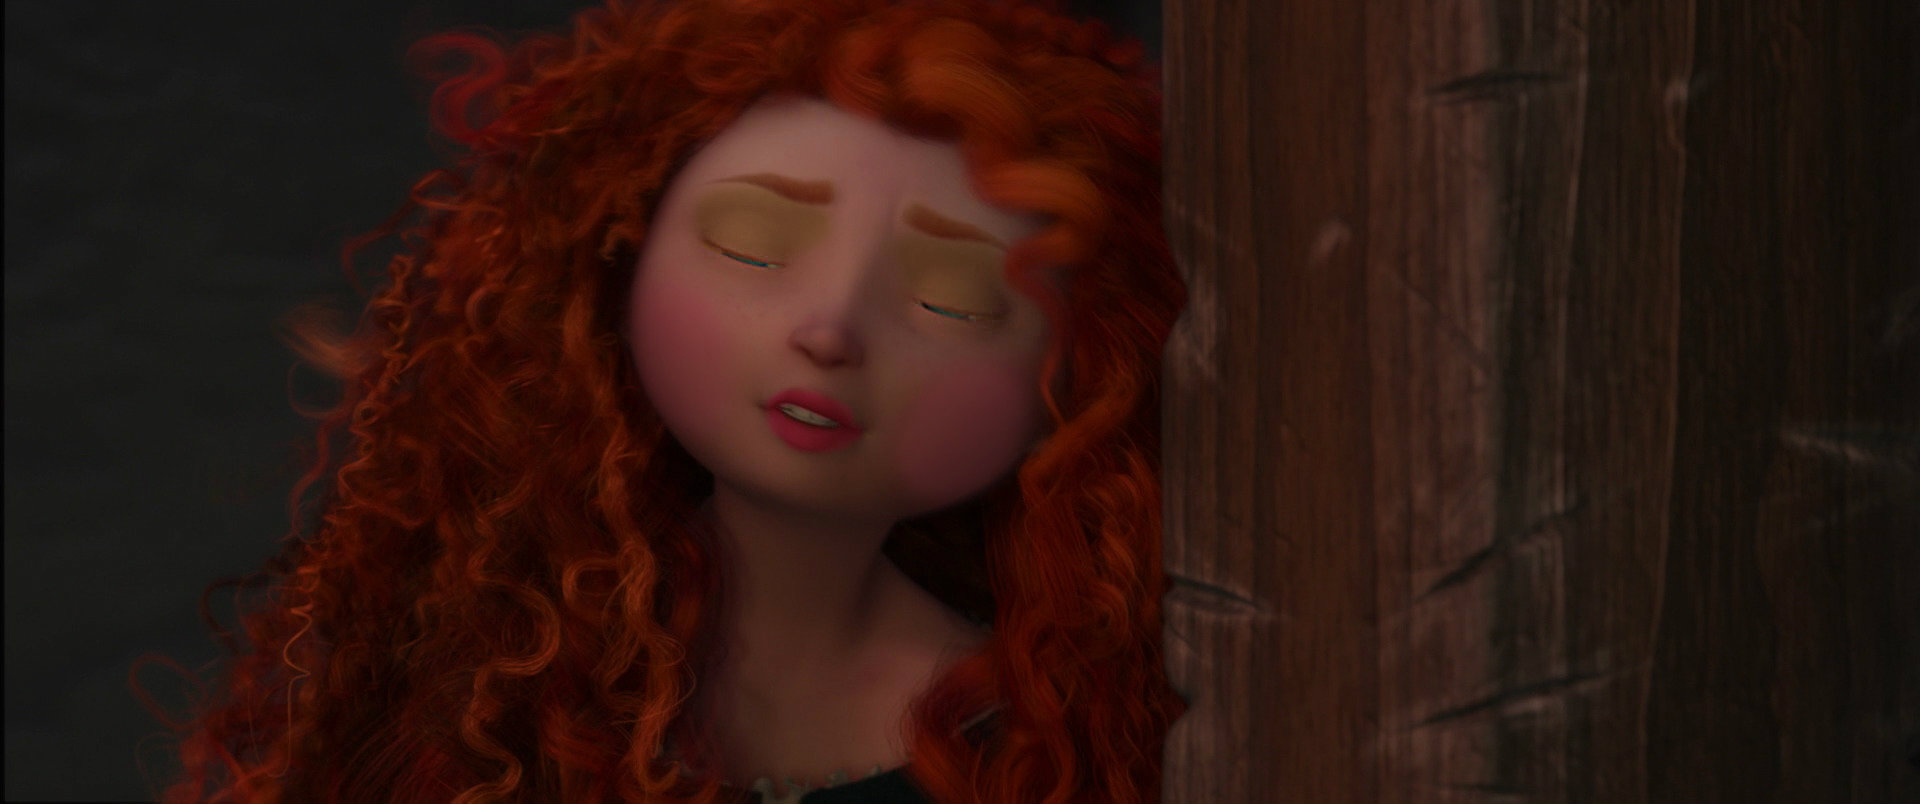 merida's nude look